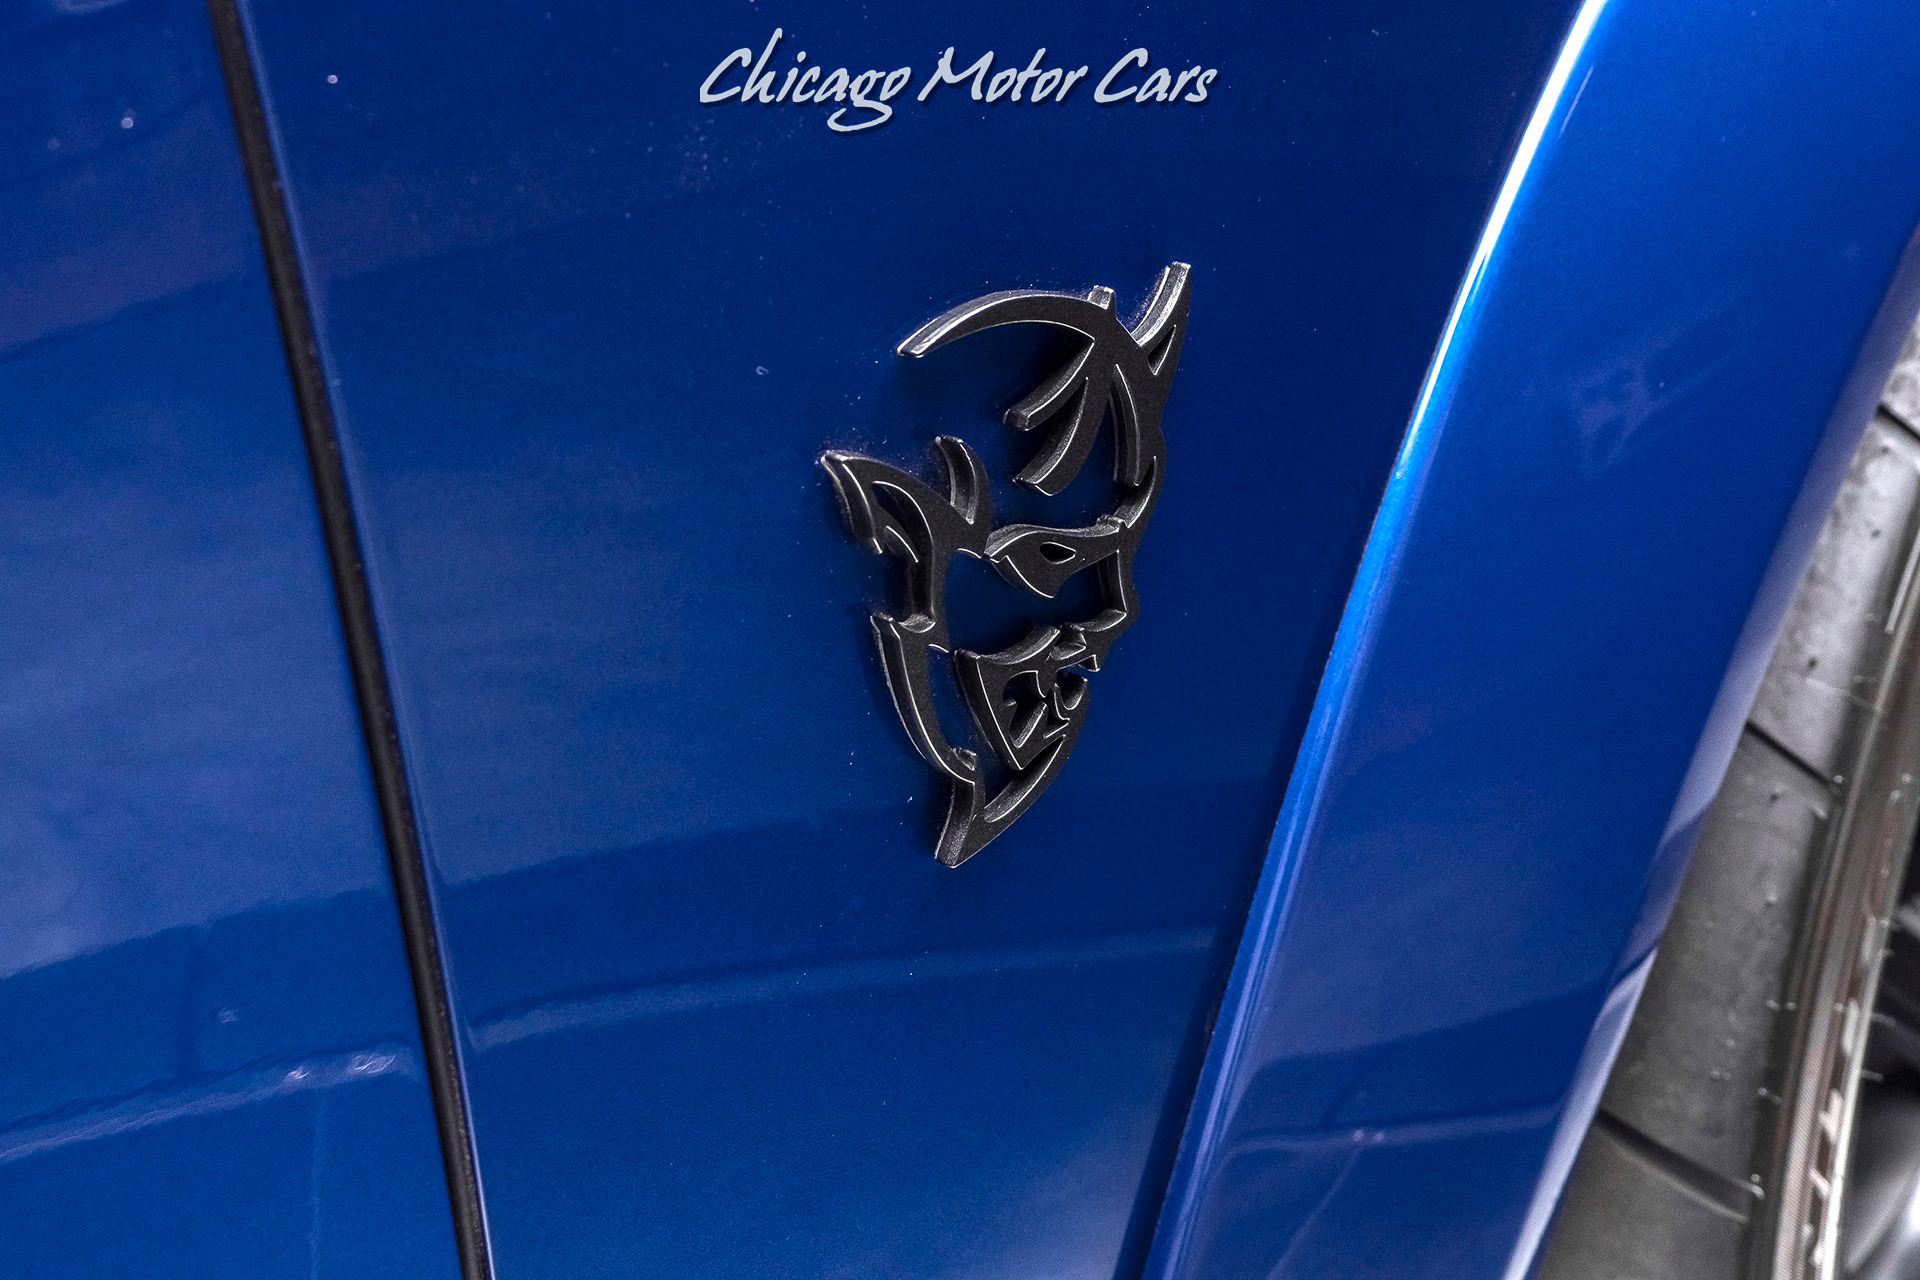 Used 2018 Dodge Challenger Srt Demon Rare Indigo Blue Paint Demon Crate Only 600 Miles For Sale 129 800 Chicago Motor Cars Stock 17669